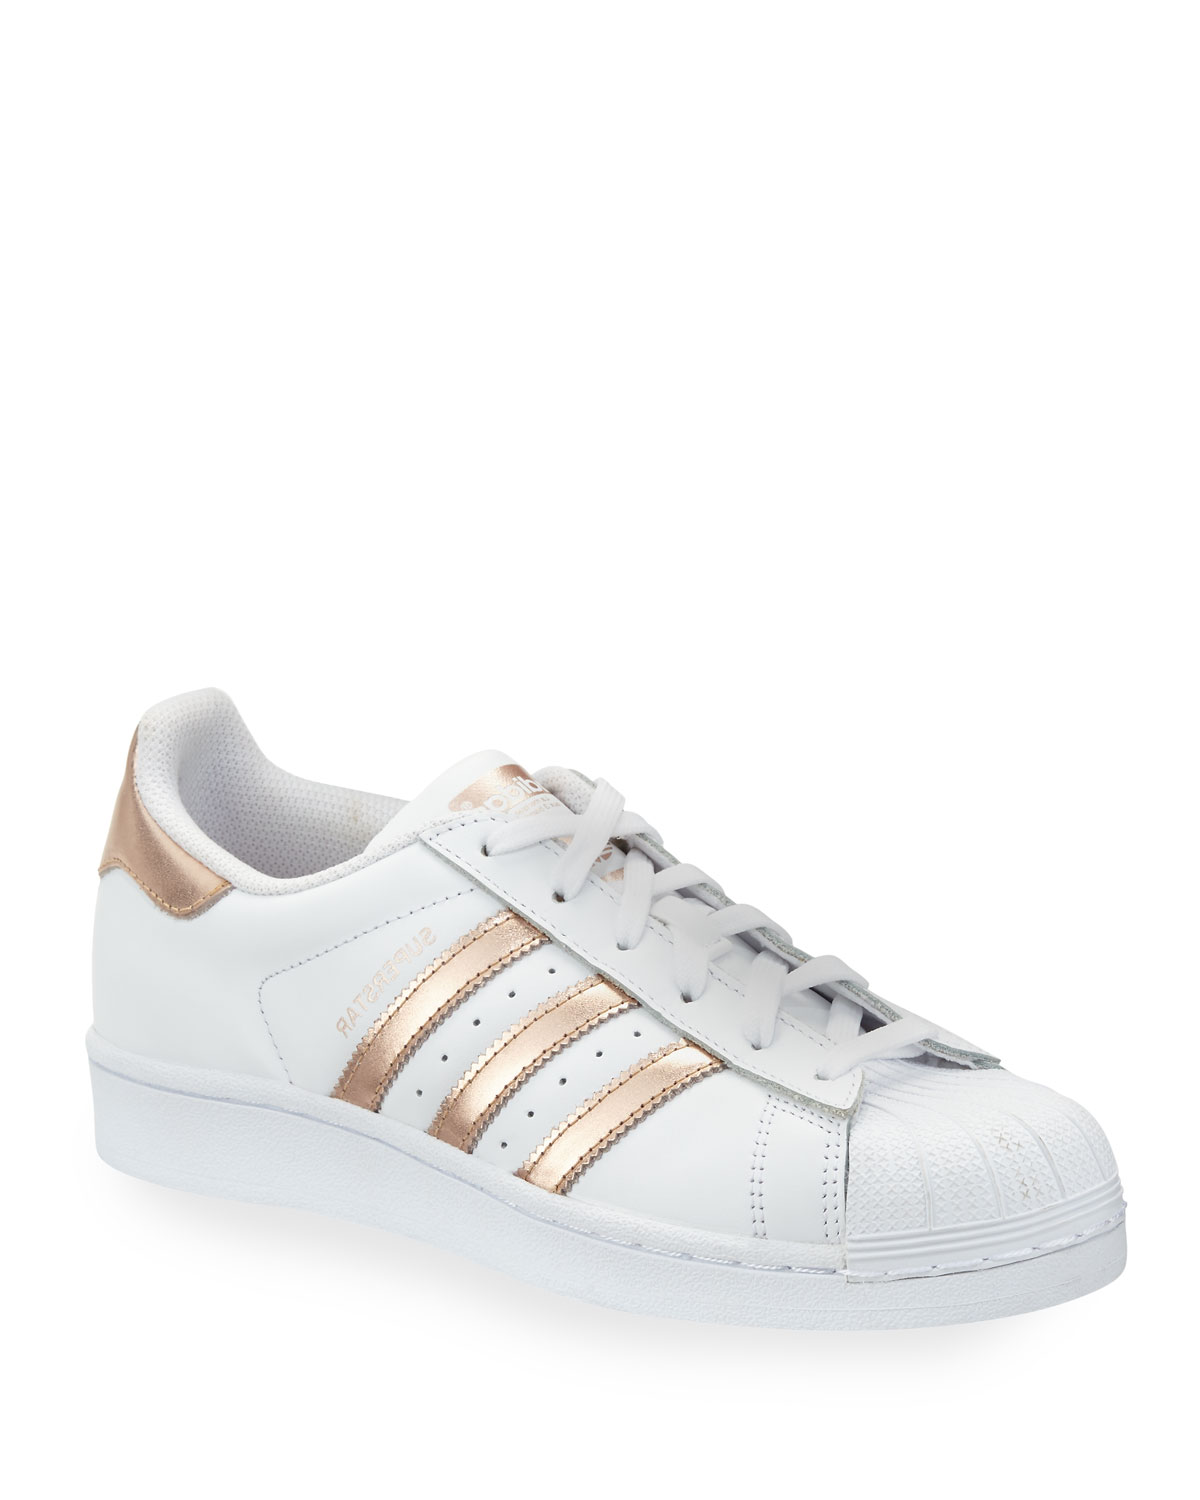 uk availability b71d4 49a17 AdidasSuperstar Original Fashion Sneakers, White Rose Gold